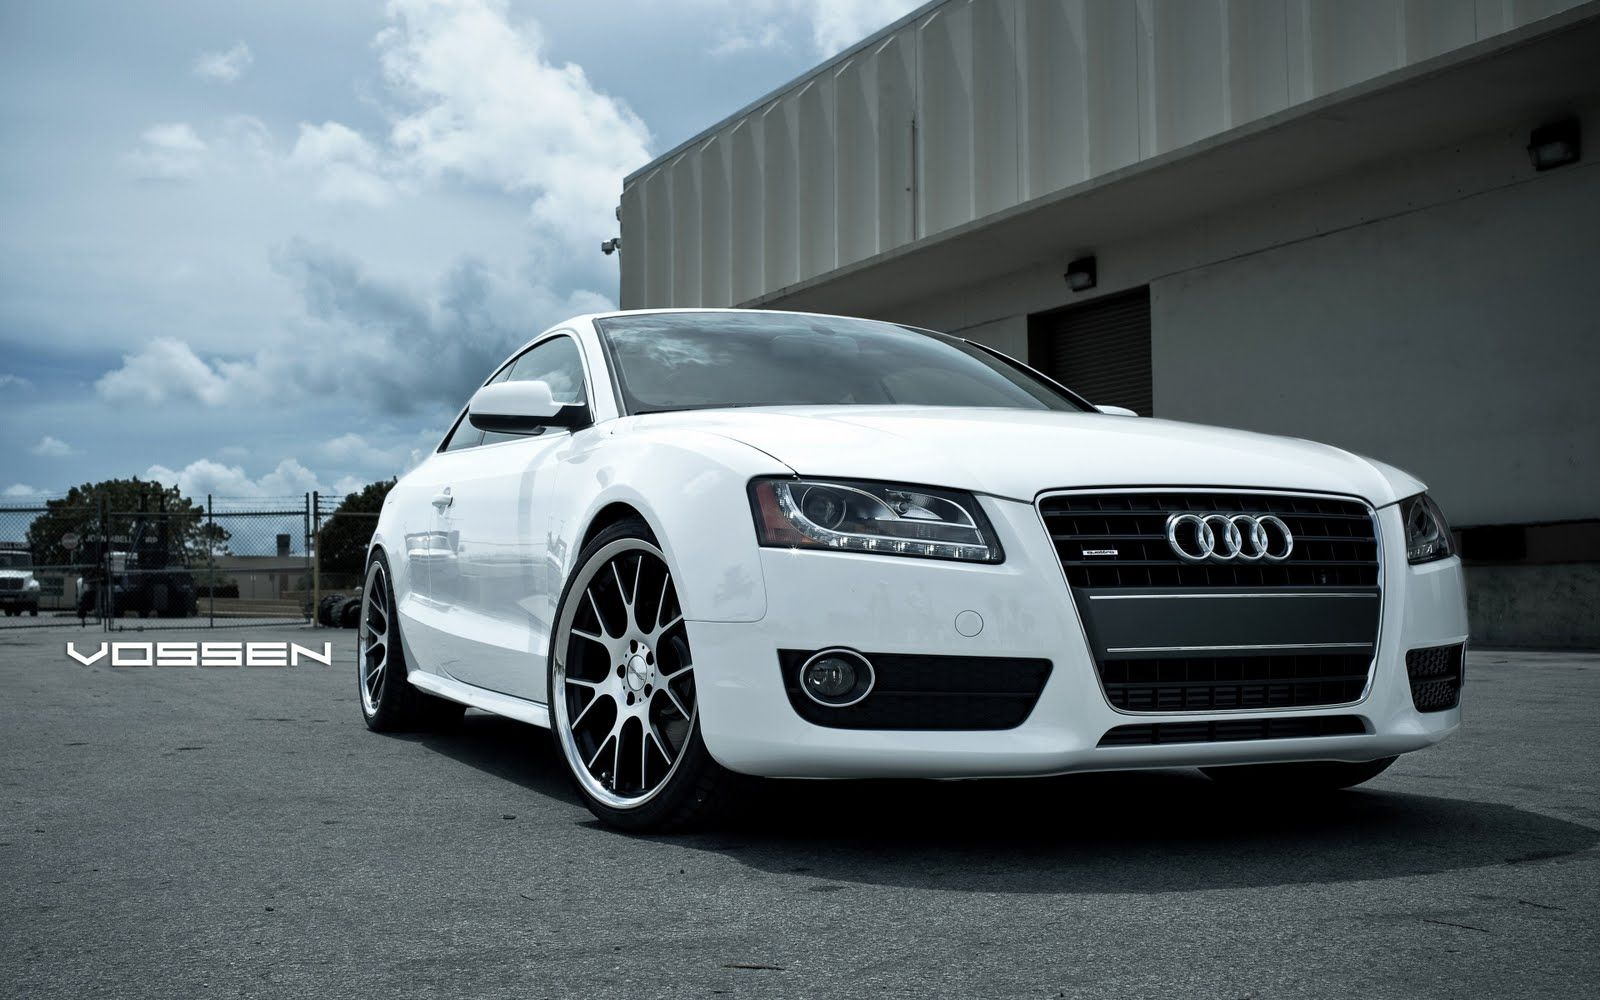 Audi A Wallpaper Audi Cars Wallpapers For Free Download